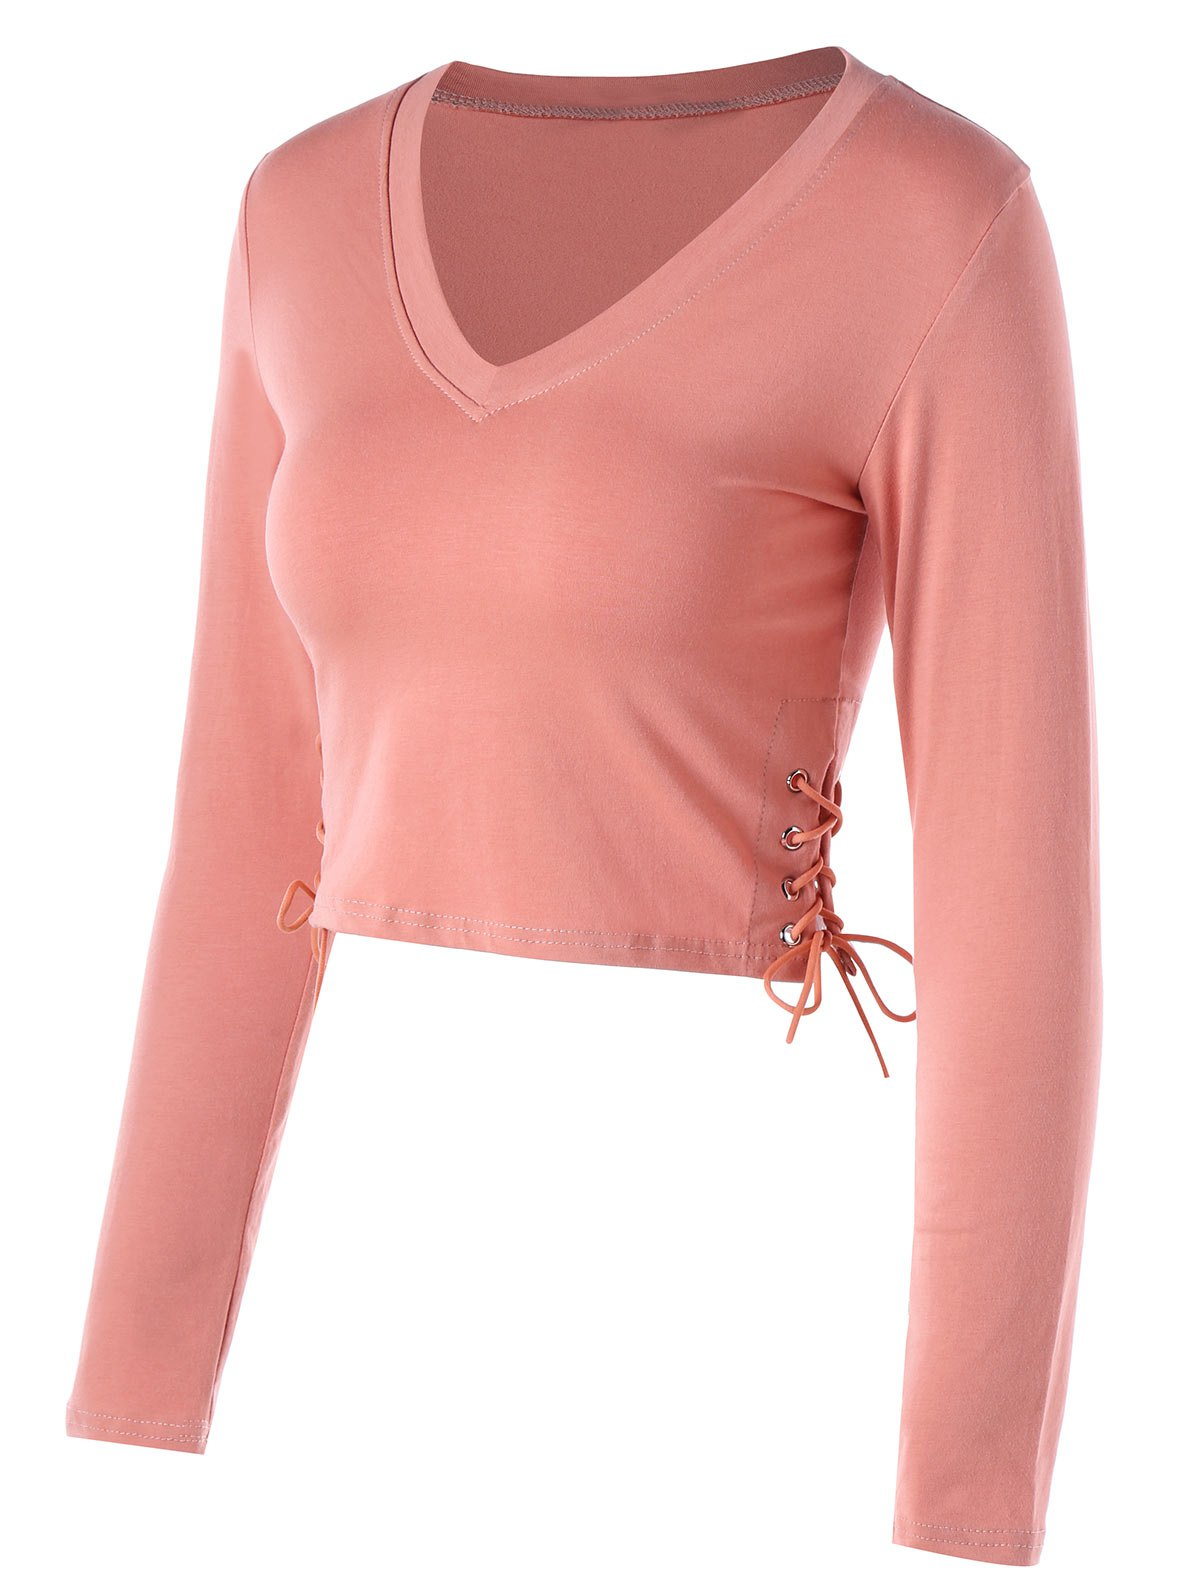 Side Lace Up Cropped Long Sleeve Top side lace up long sleeve knitwear